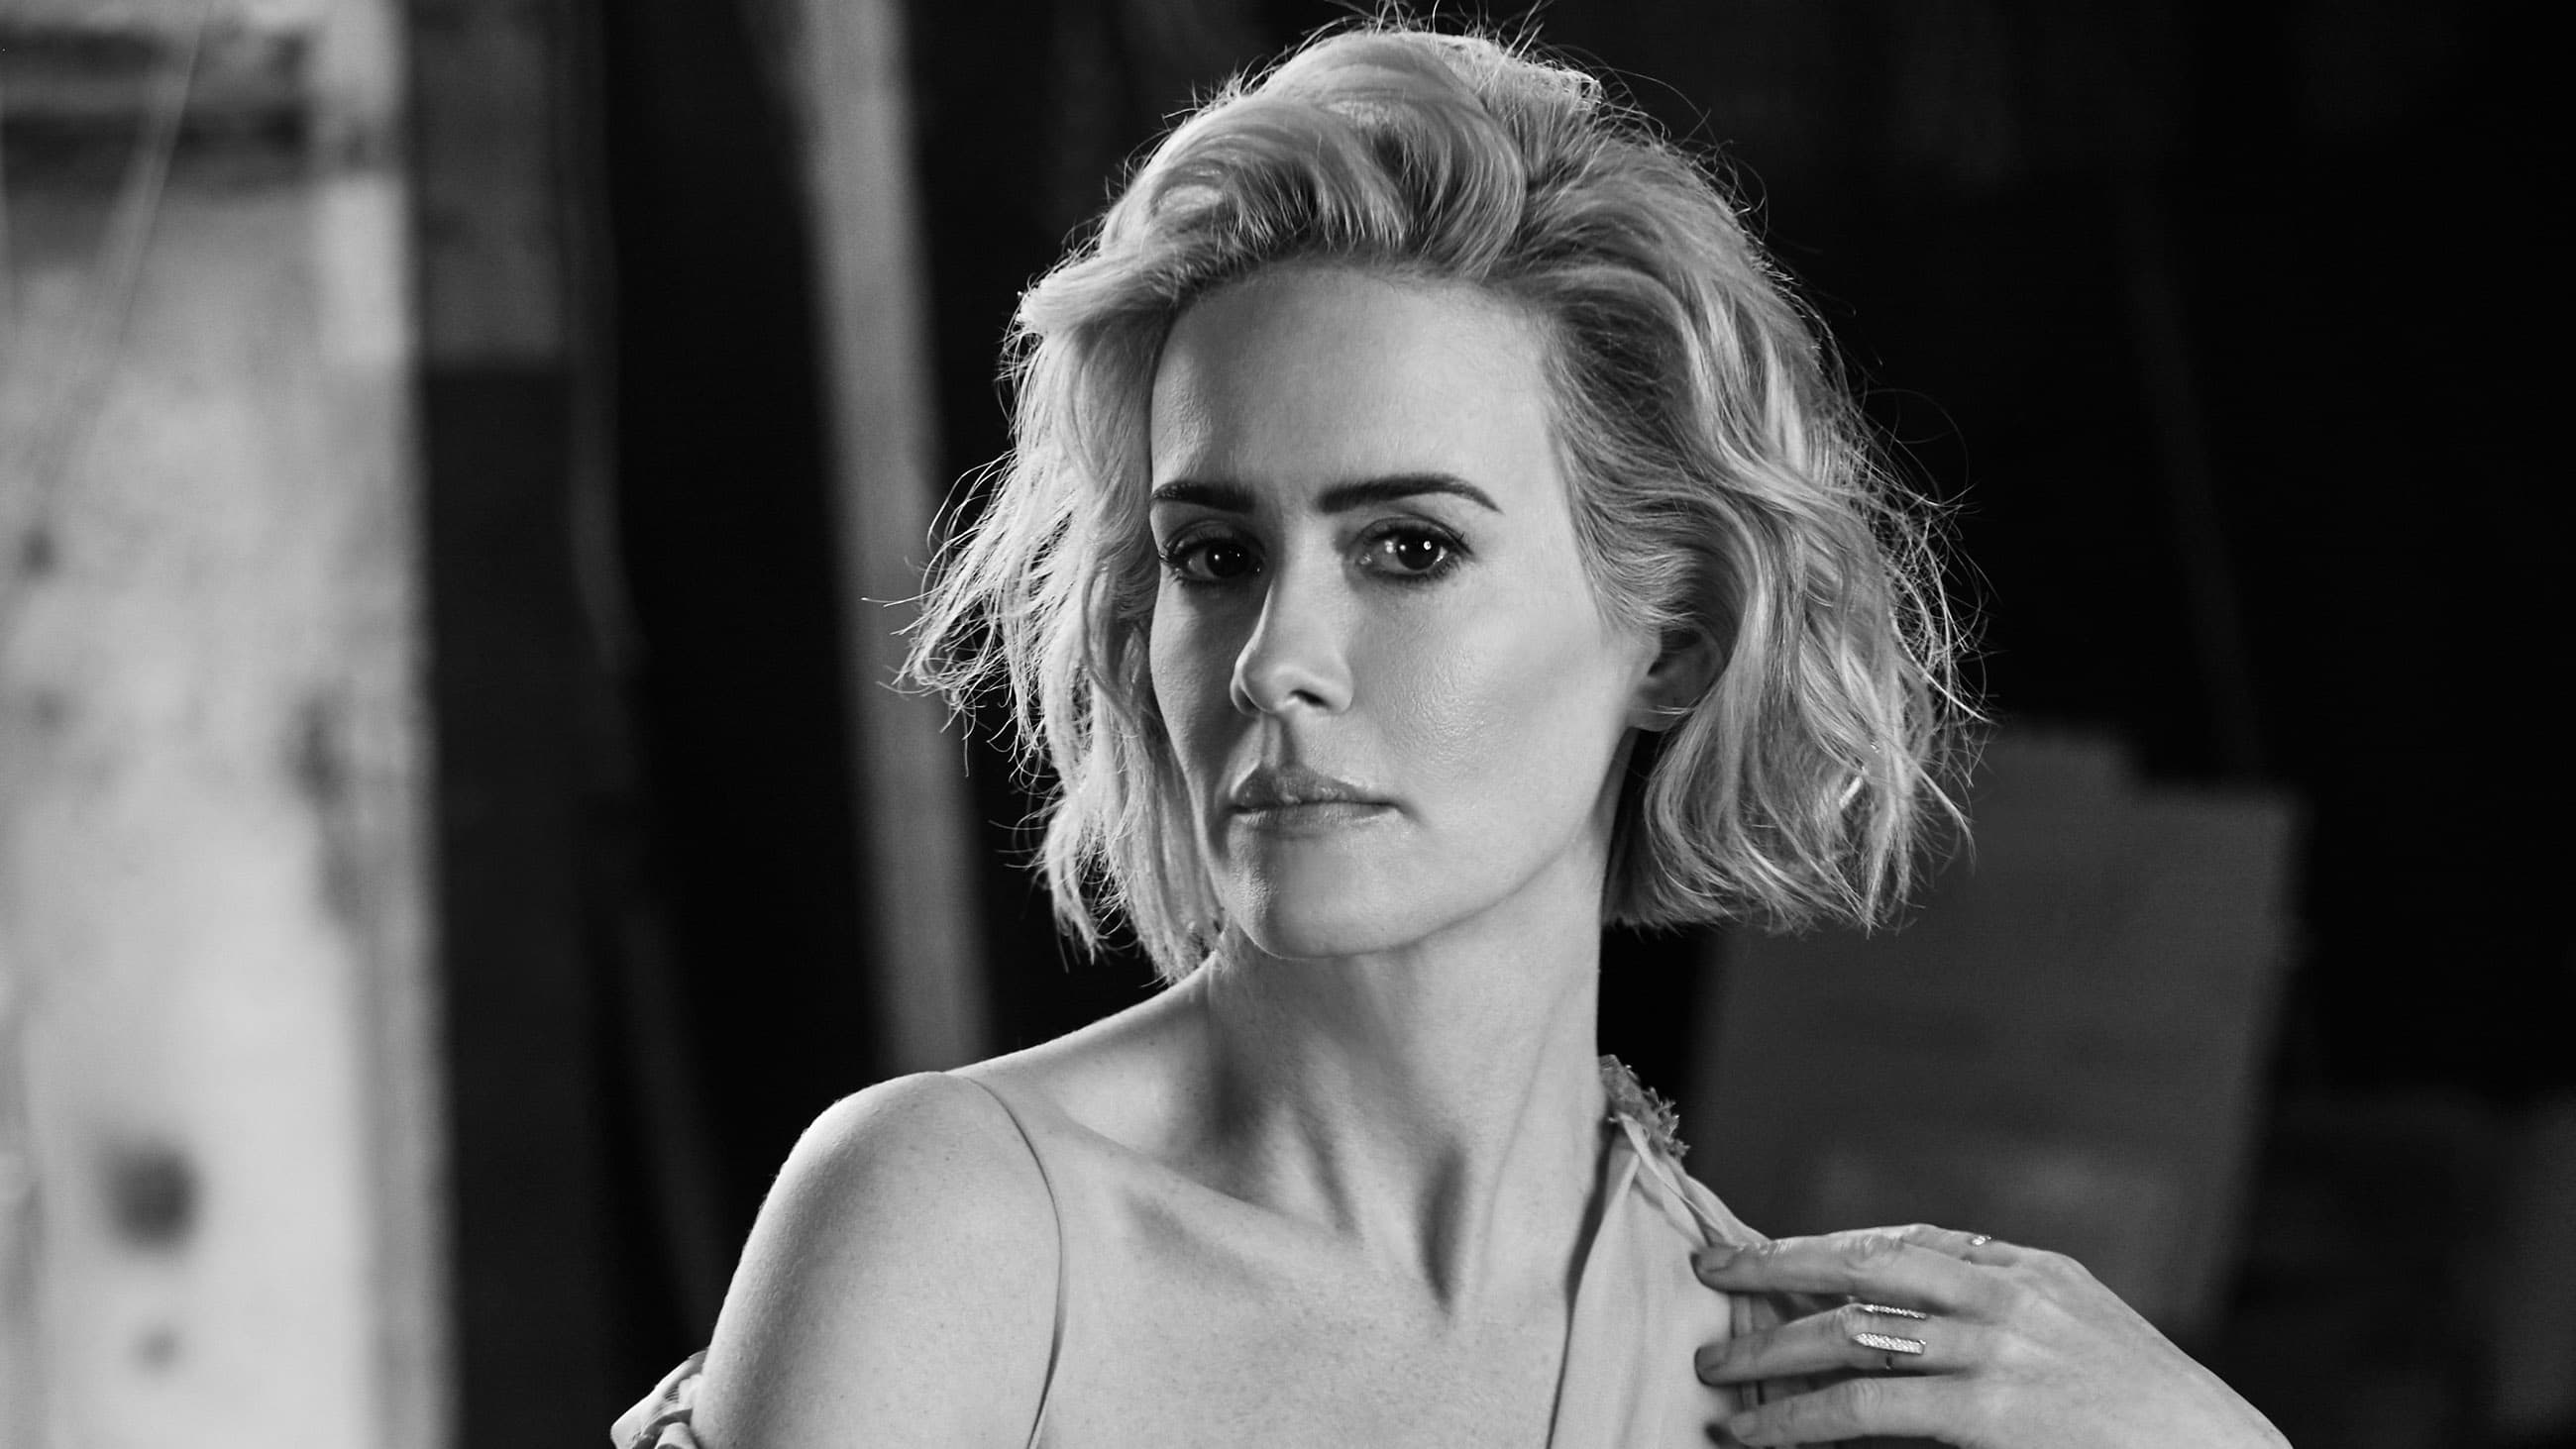 monochrome sarah paulson wallpaper 55740